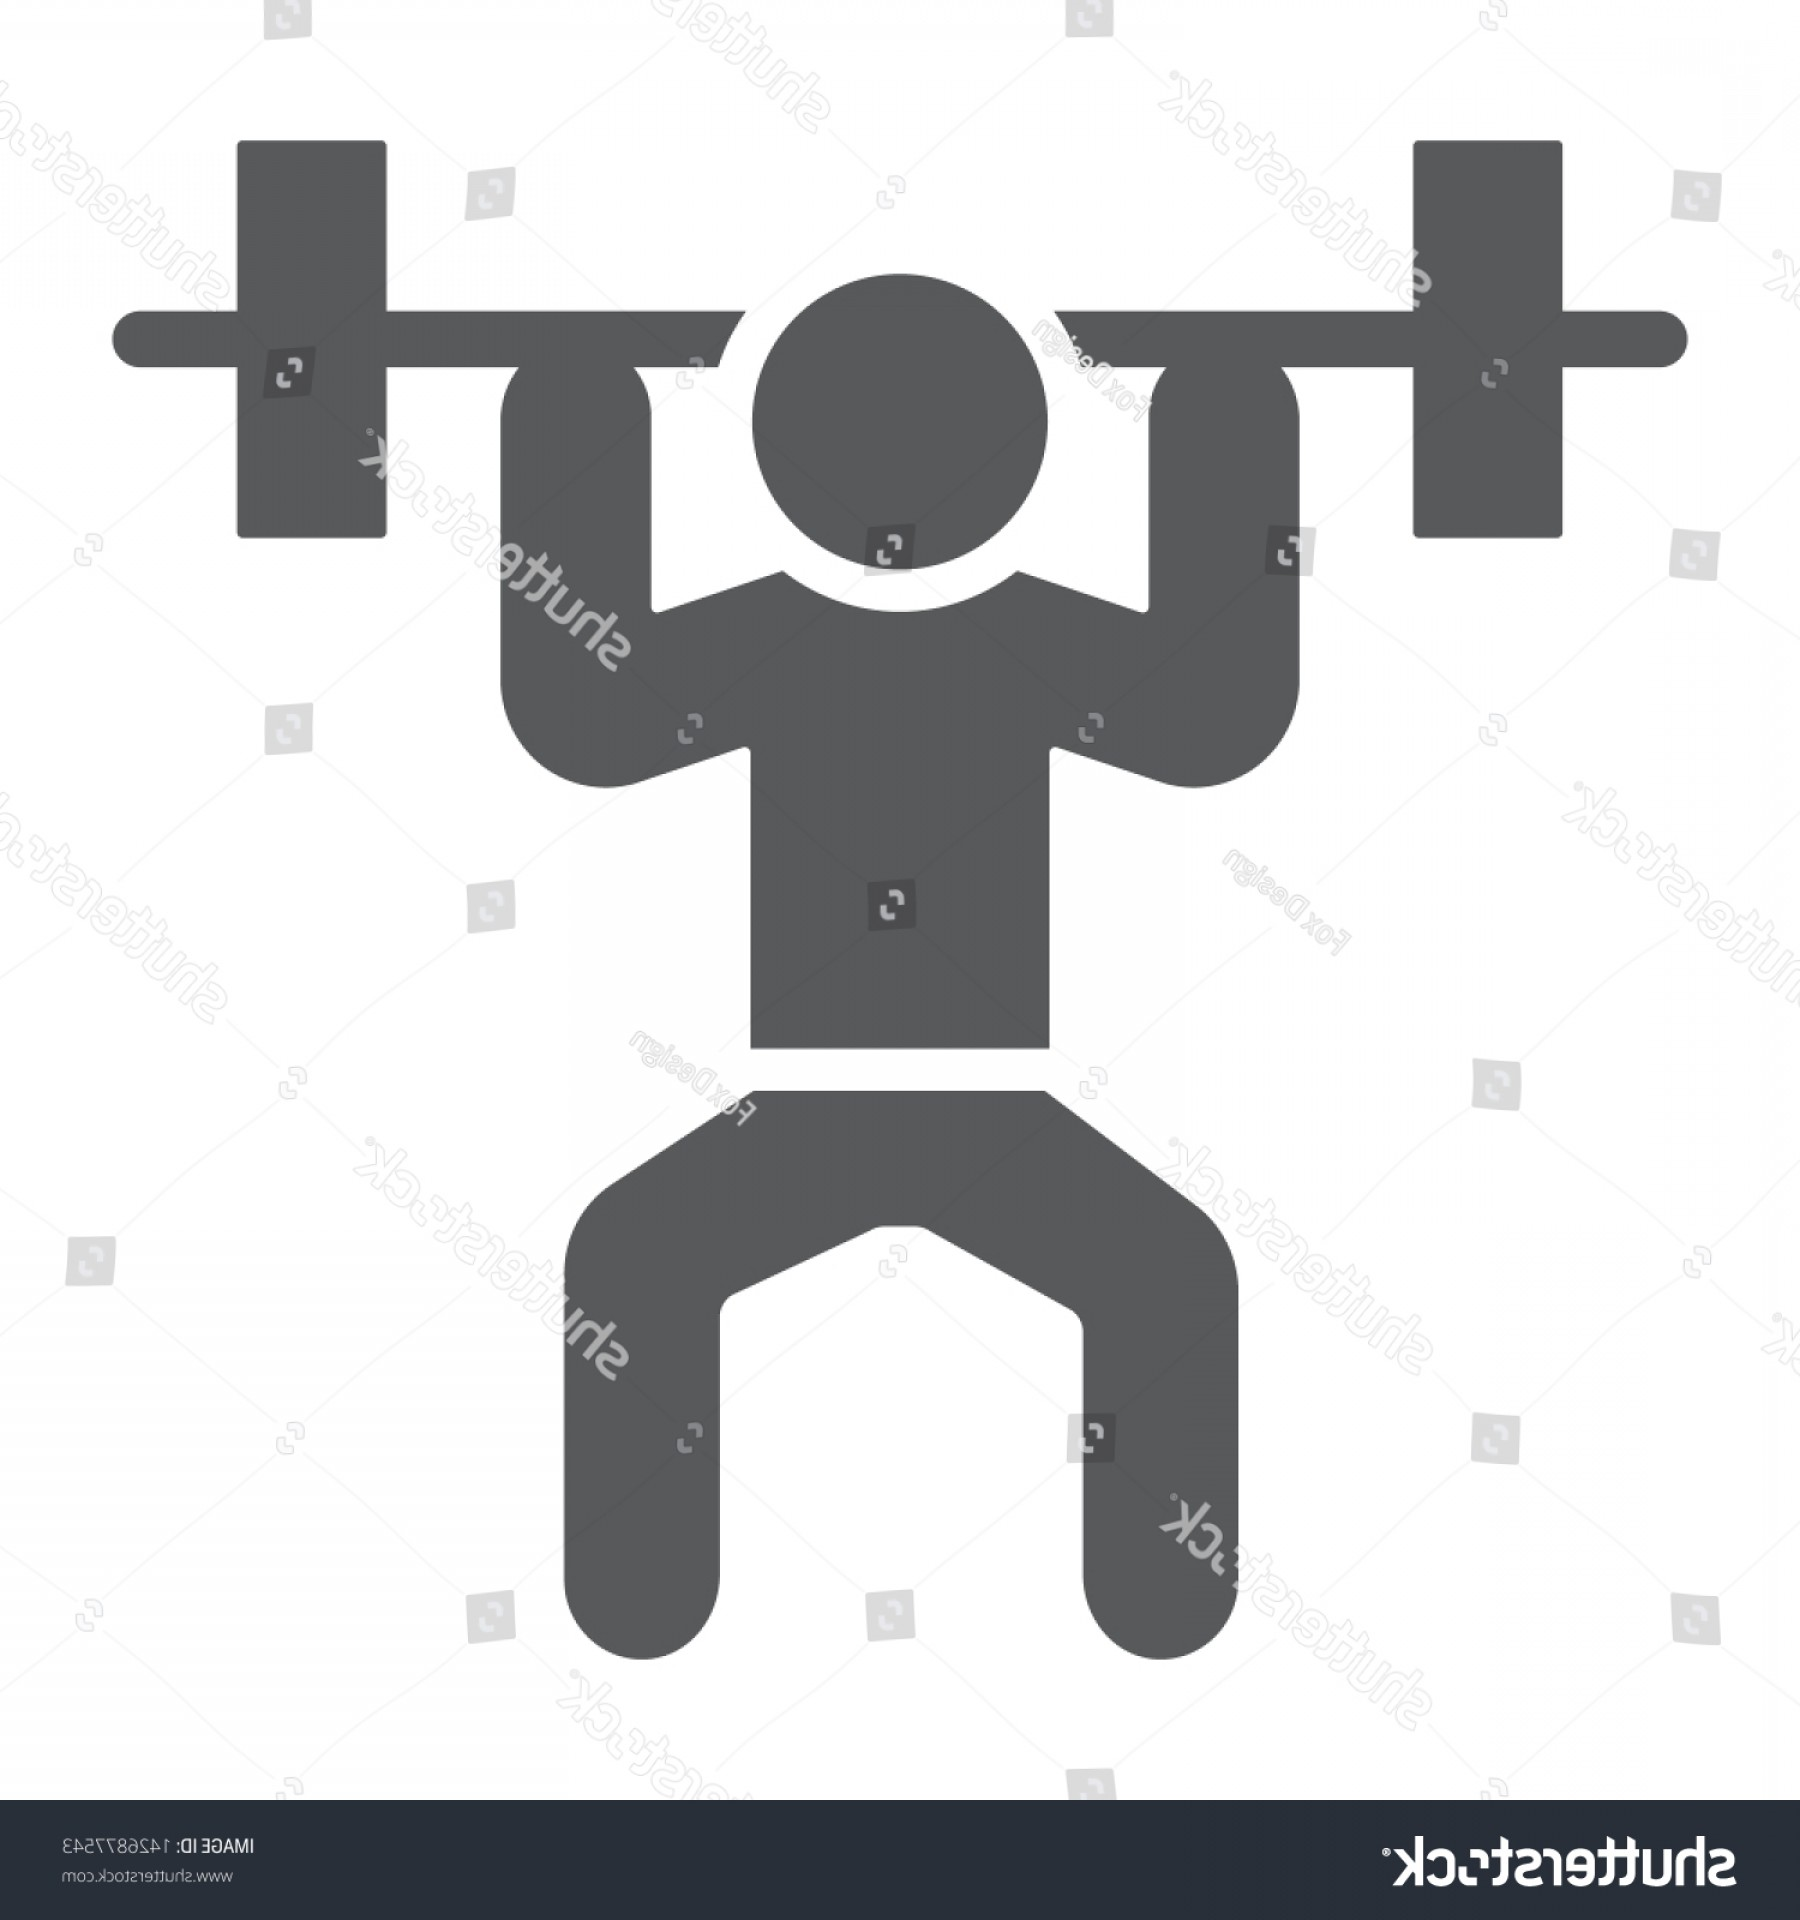 Weight Lifting Vector Graphics: Weightlifter Glyph Icon Sport Bodybuilding Weightlifting